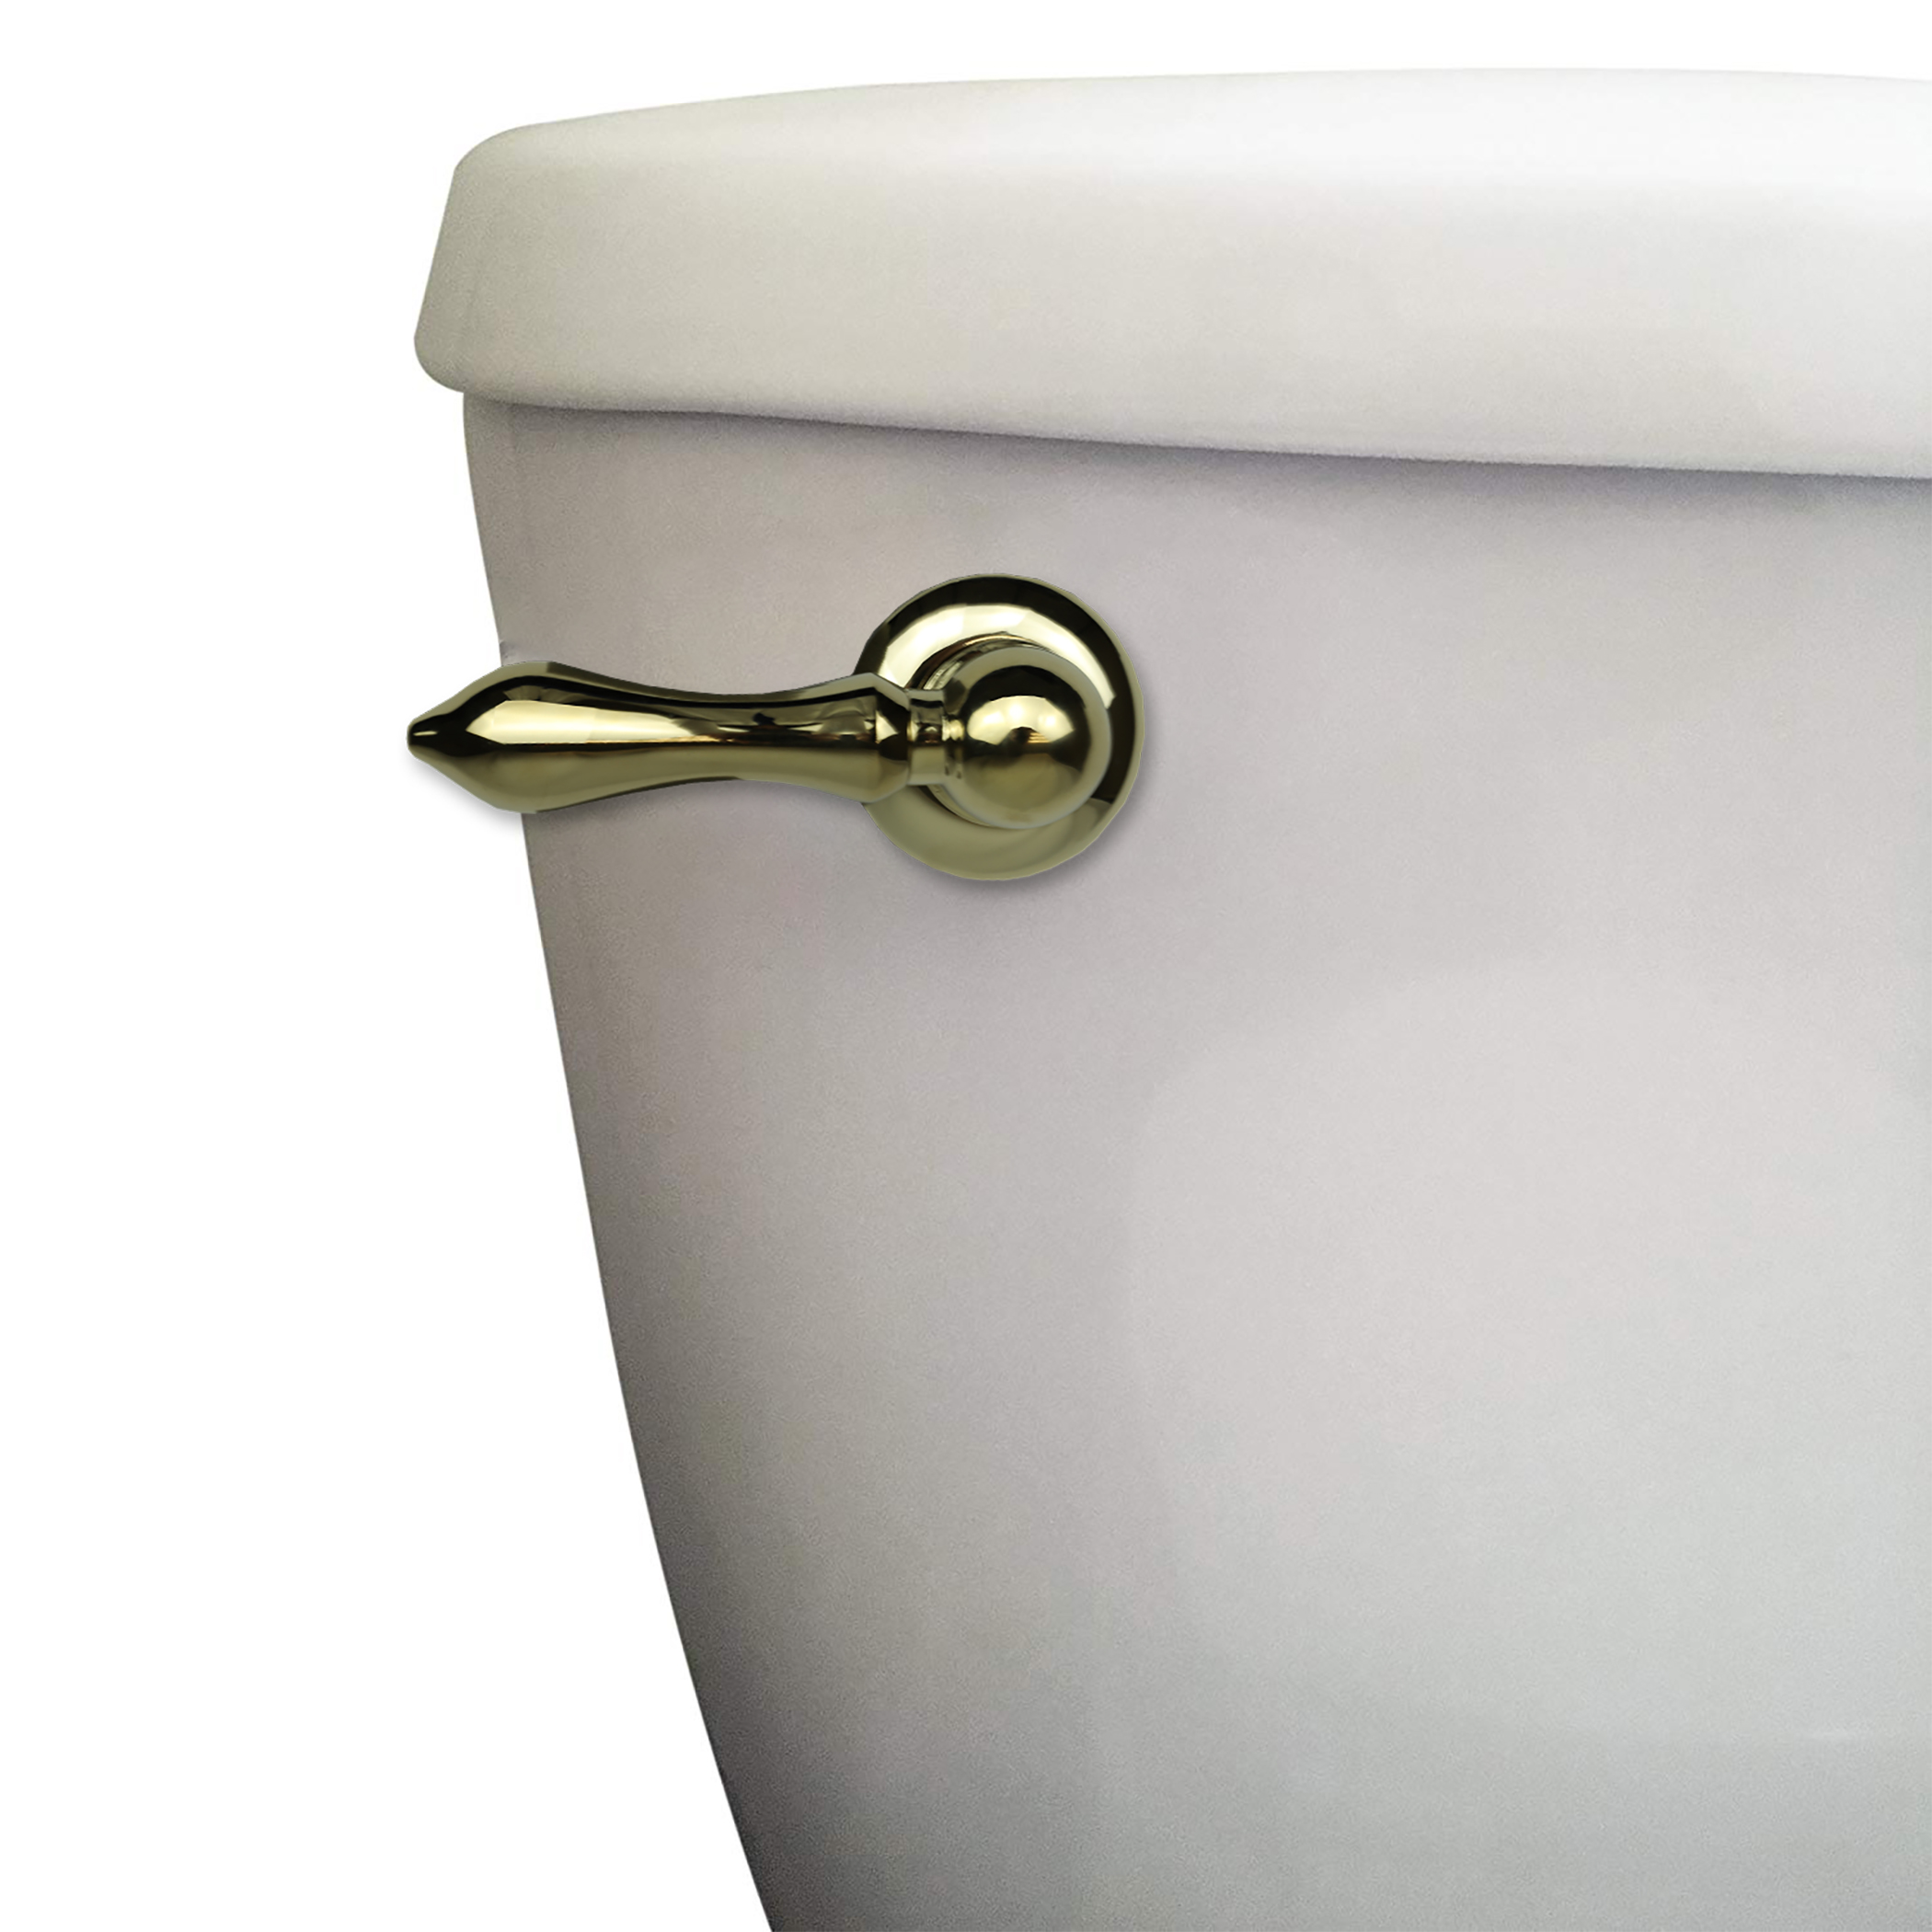 DANCO Decorative Front Mount Toilet Tank Handle Replacement, Polished Brass (89451A) (Walmart)